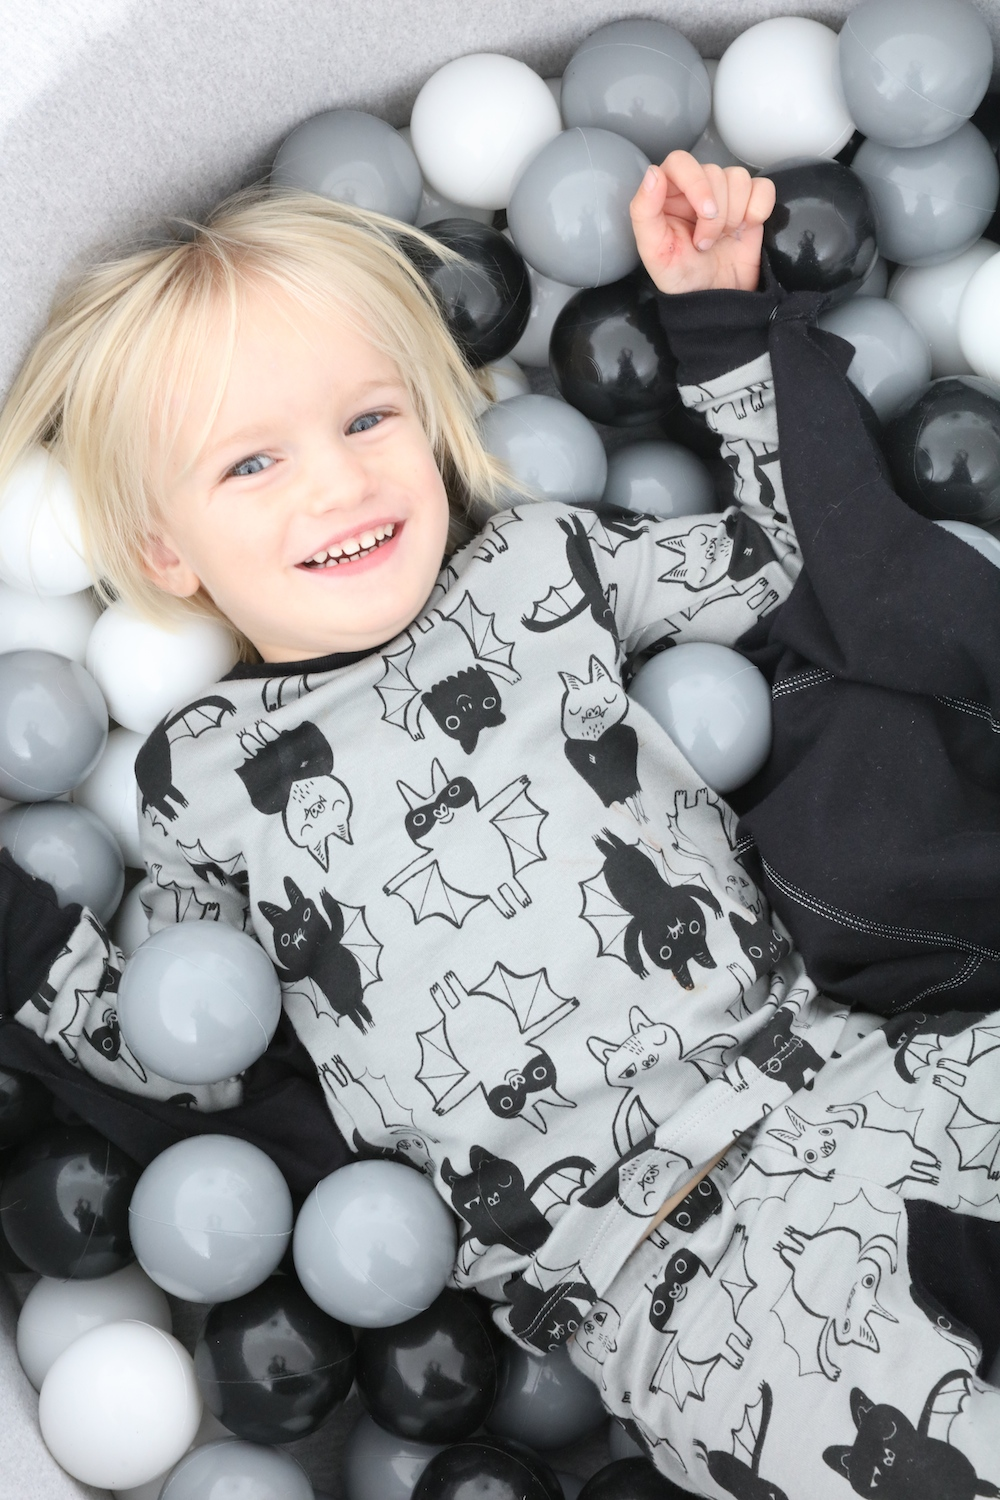 the_modern_nursery_ball_pit_the_bright_company_pyjamas